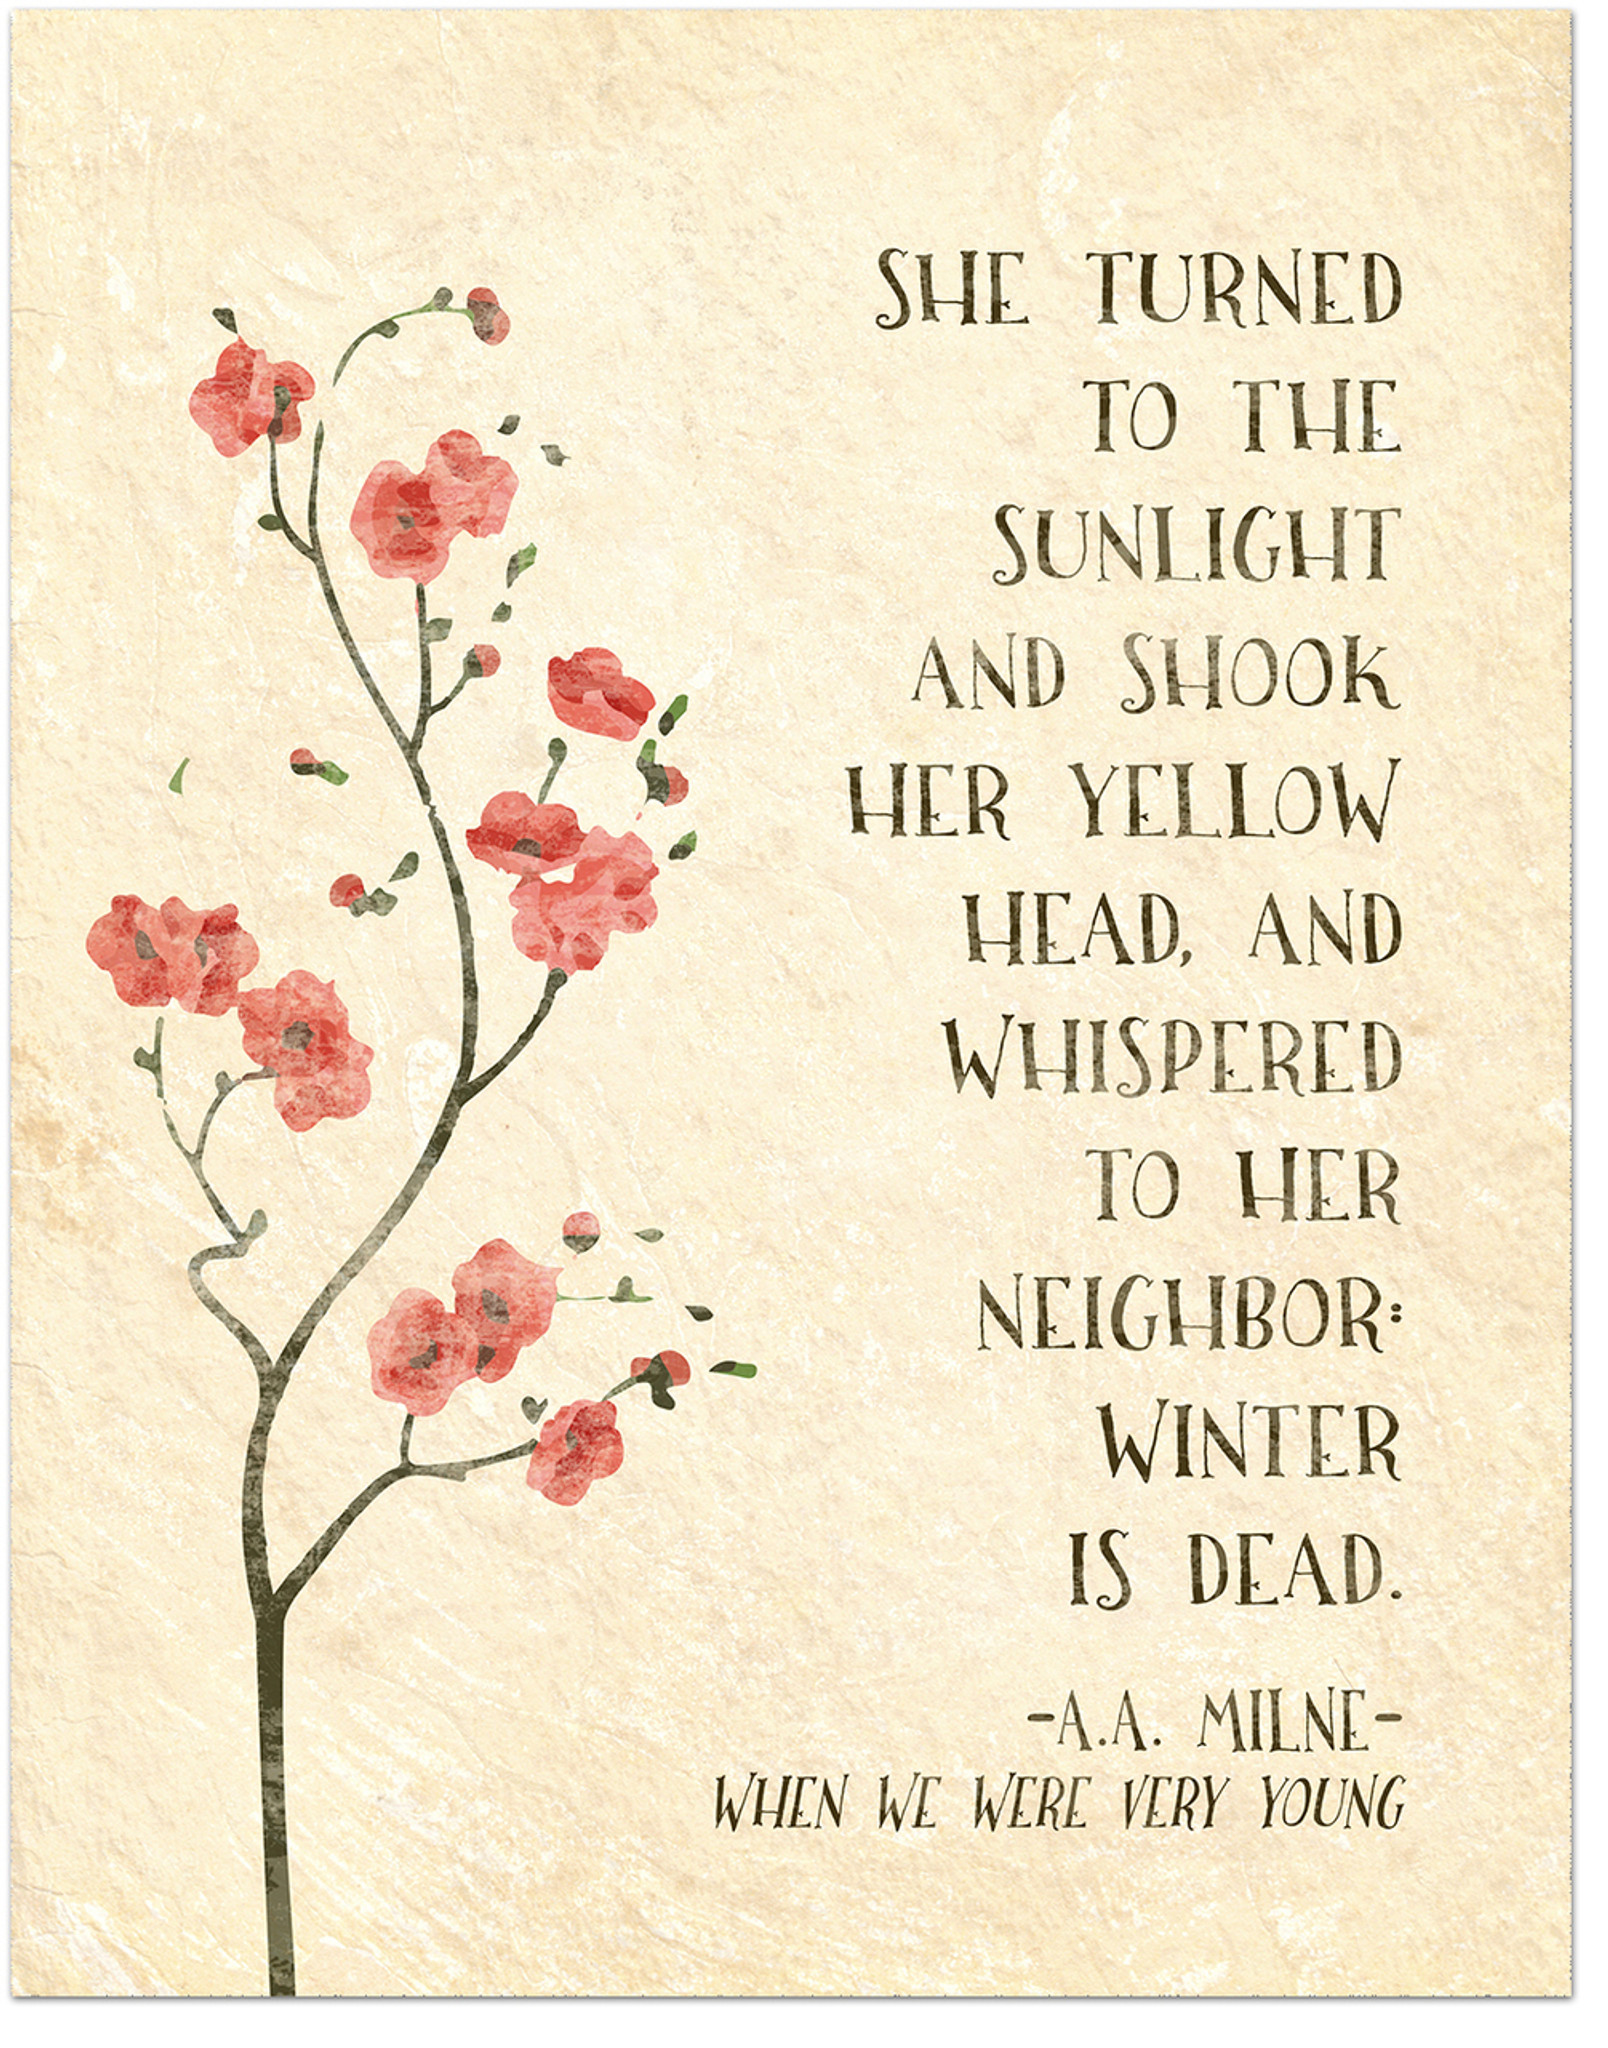 Winter Is Dead Aa Milne Inspirational Literary Quote From When